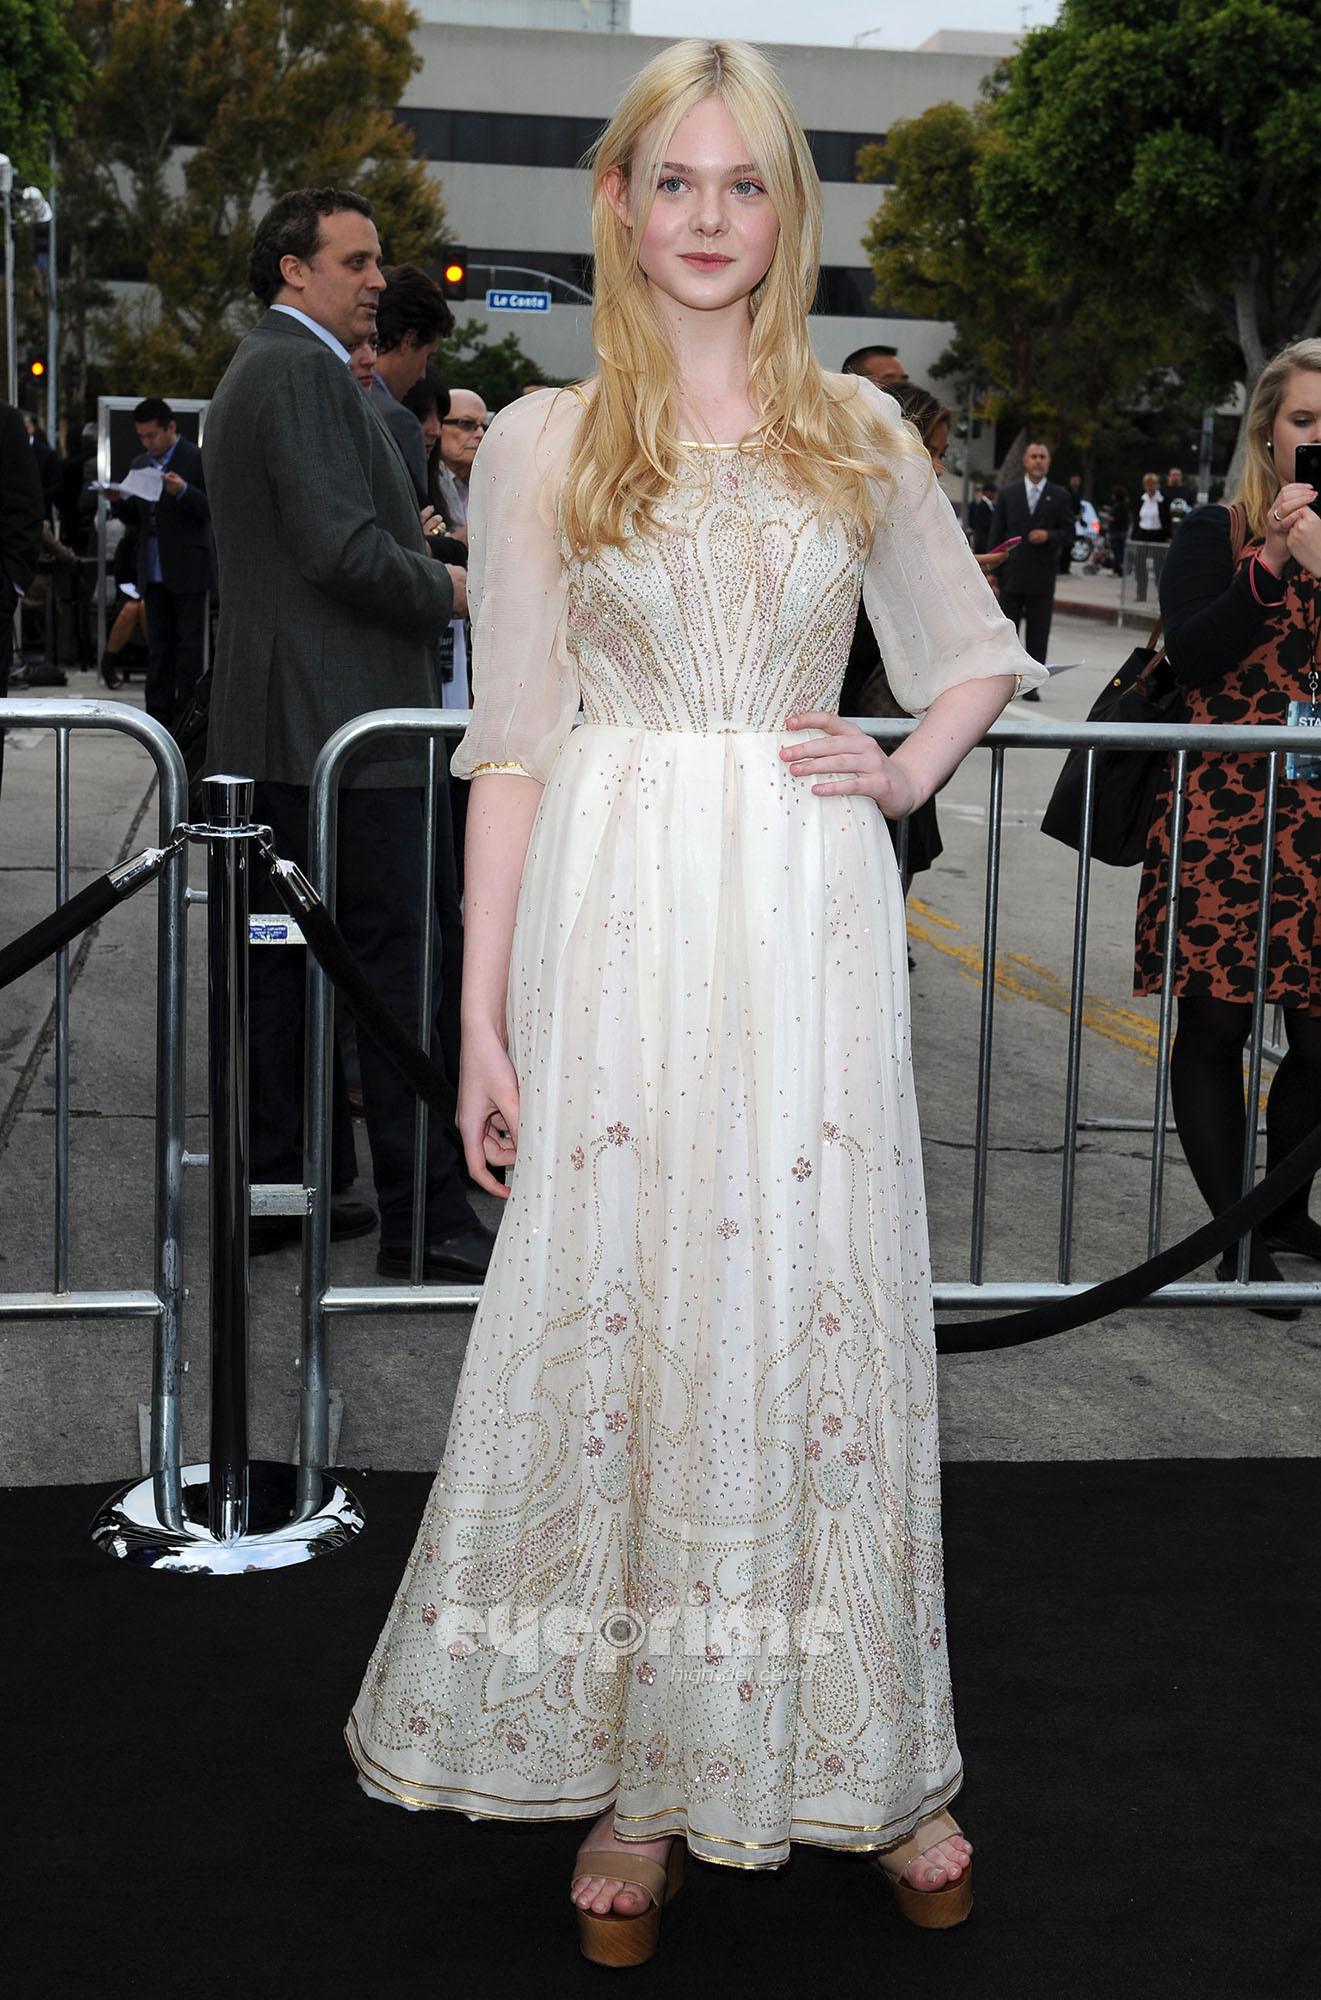 Elle Fanning HQ http://www.fanpop.com/clubs/elle-fanning/images/22726185/title/super-8-los-angeles-premiere-hq-photo